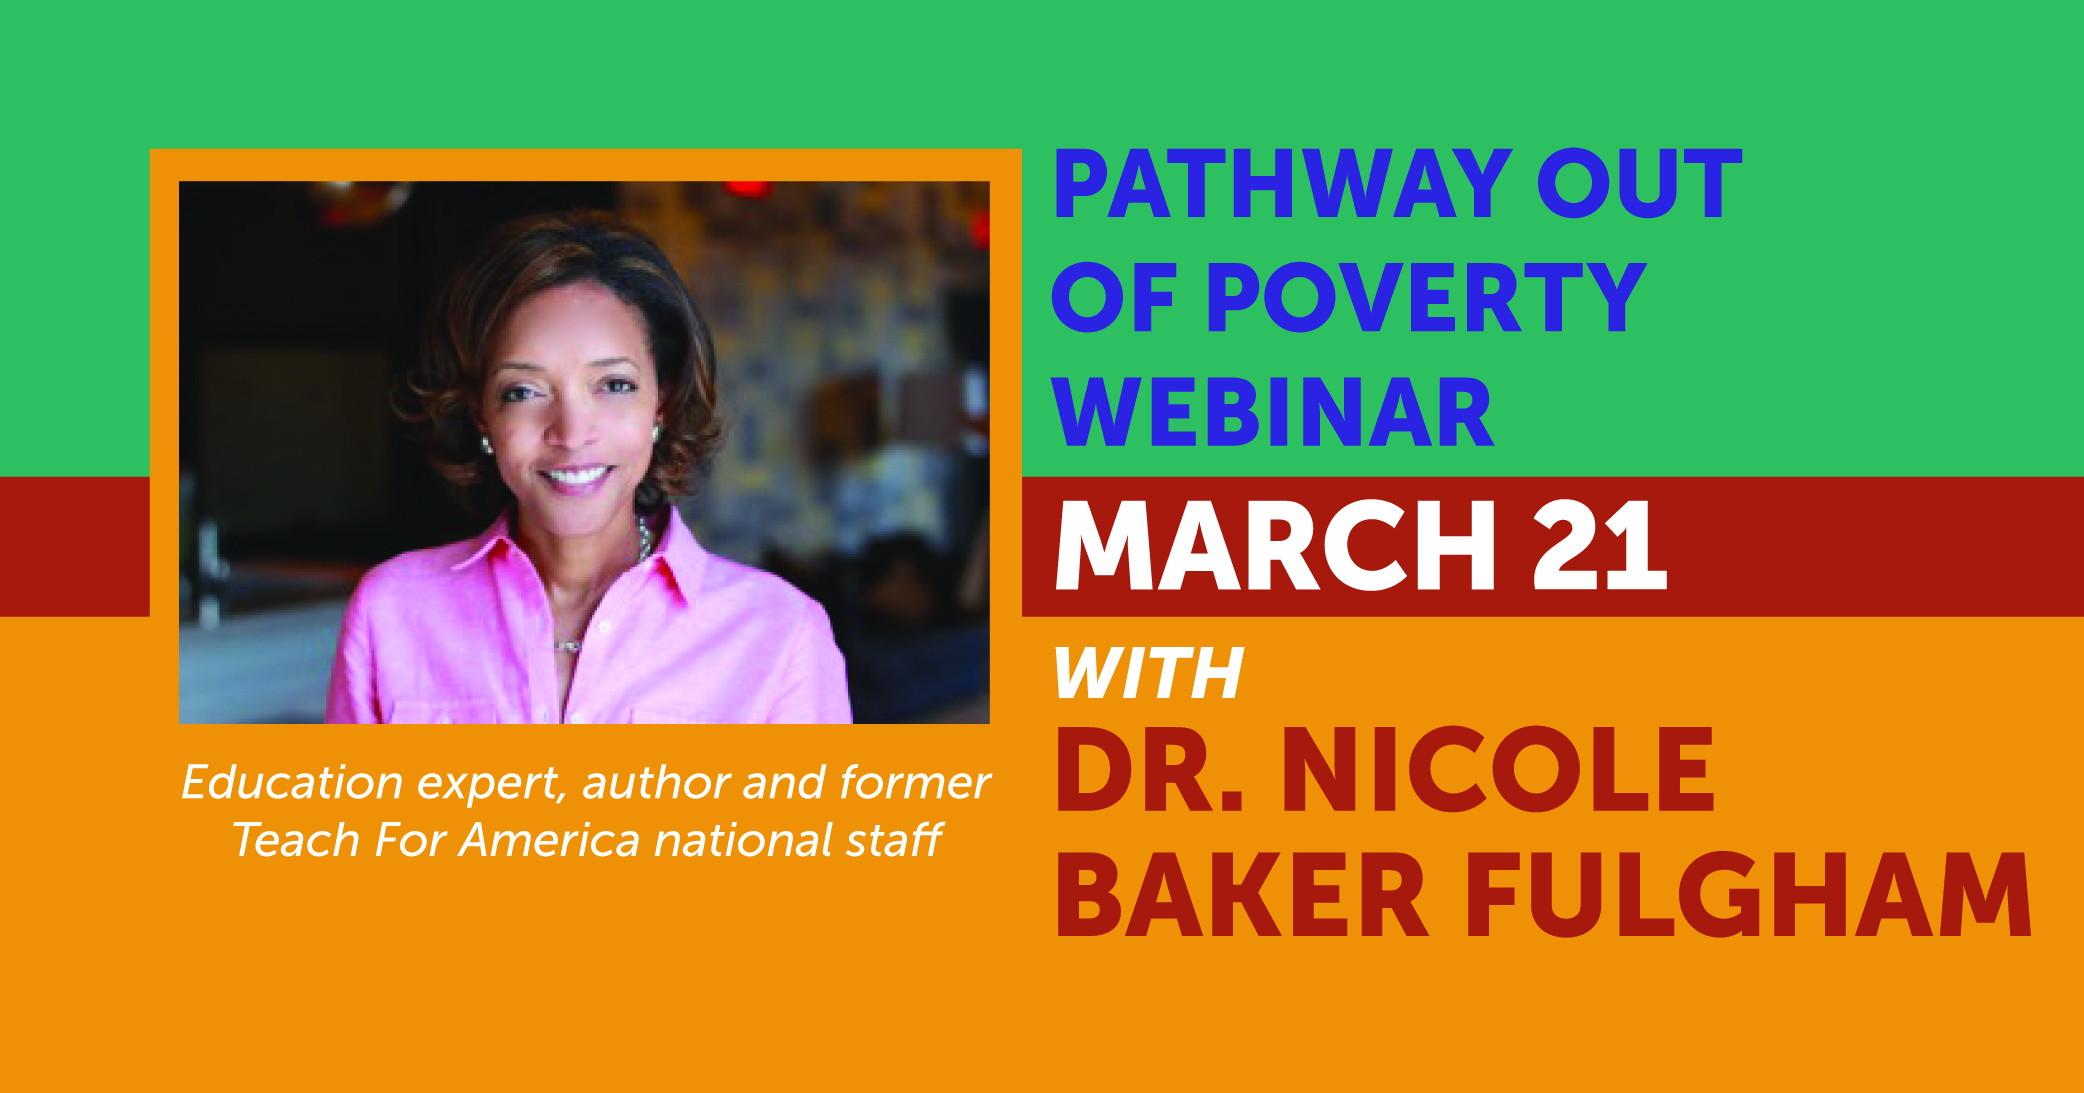 Pathway Out of Poverty Webinar: Dr. Nicole Baker Fulgham